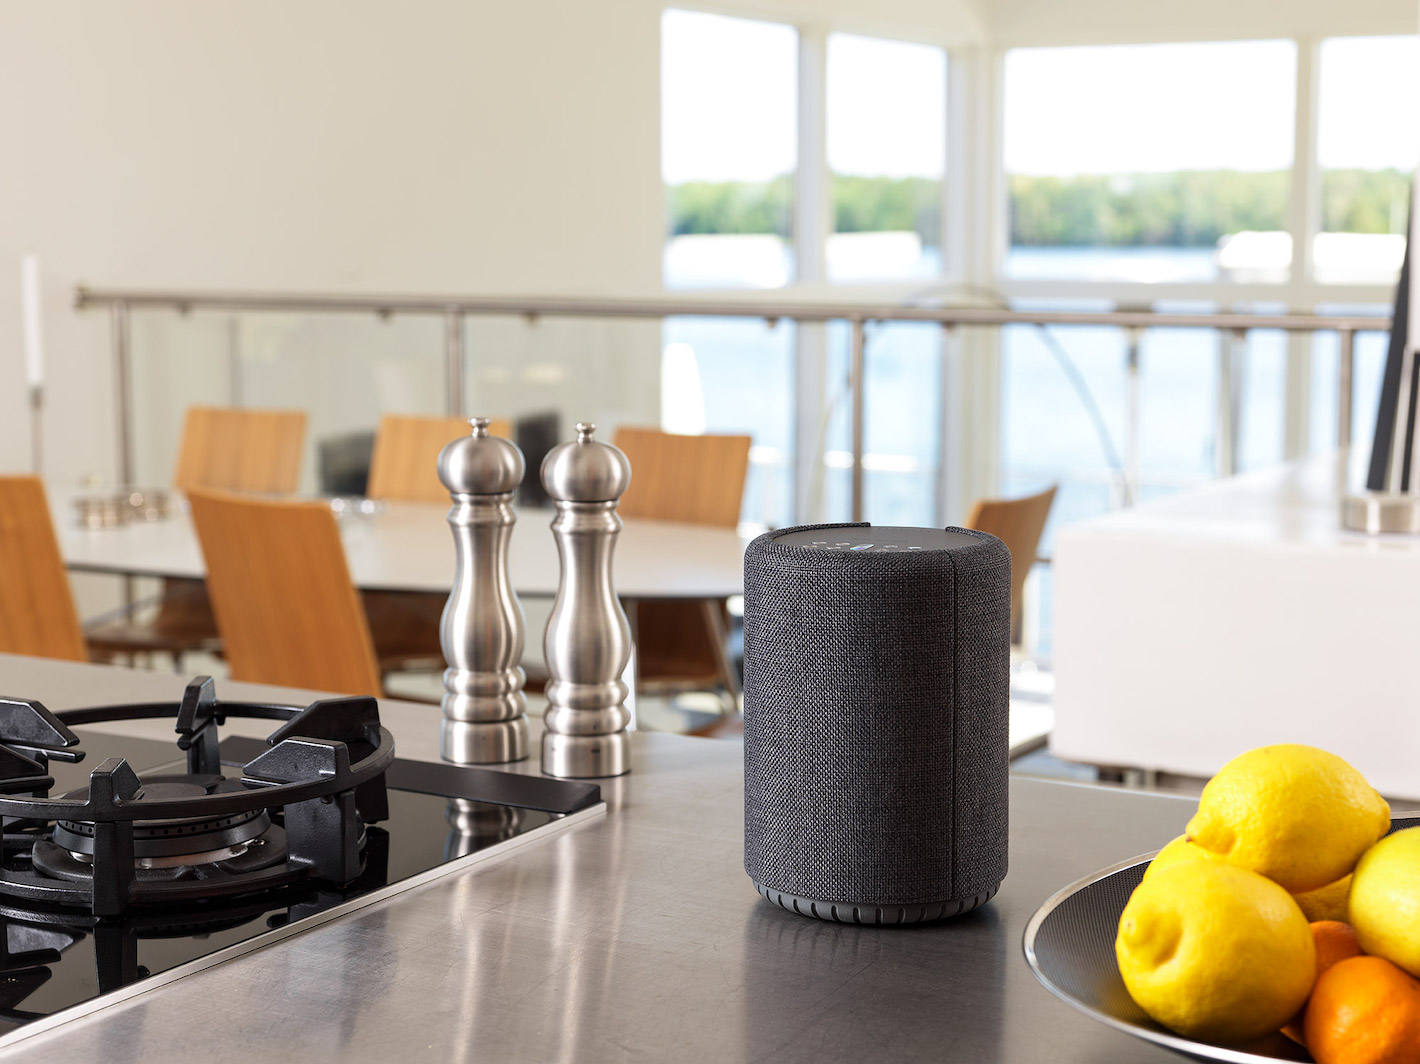 wireless-multiroom-speaker-A10-darkgray-Lifestyle-works-with-alexa-AudioPro-01